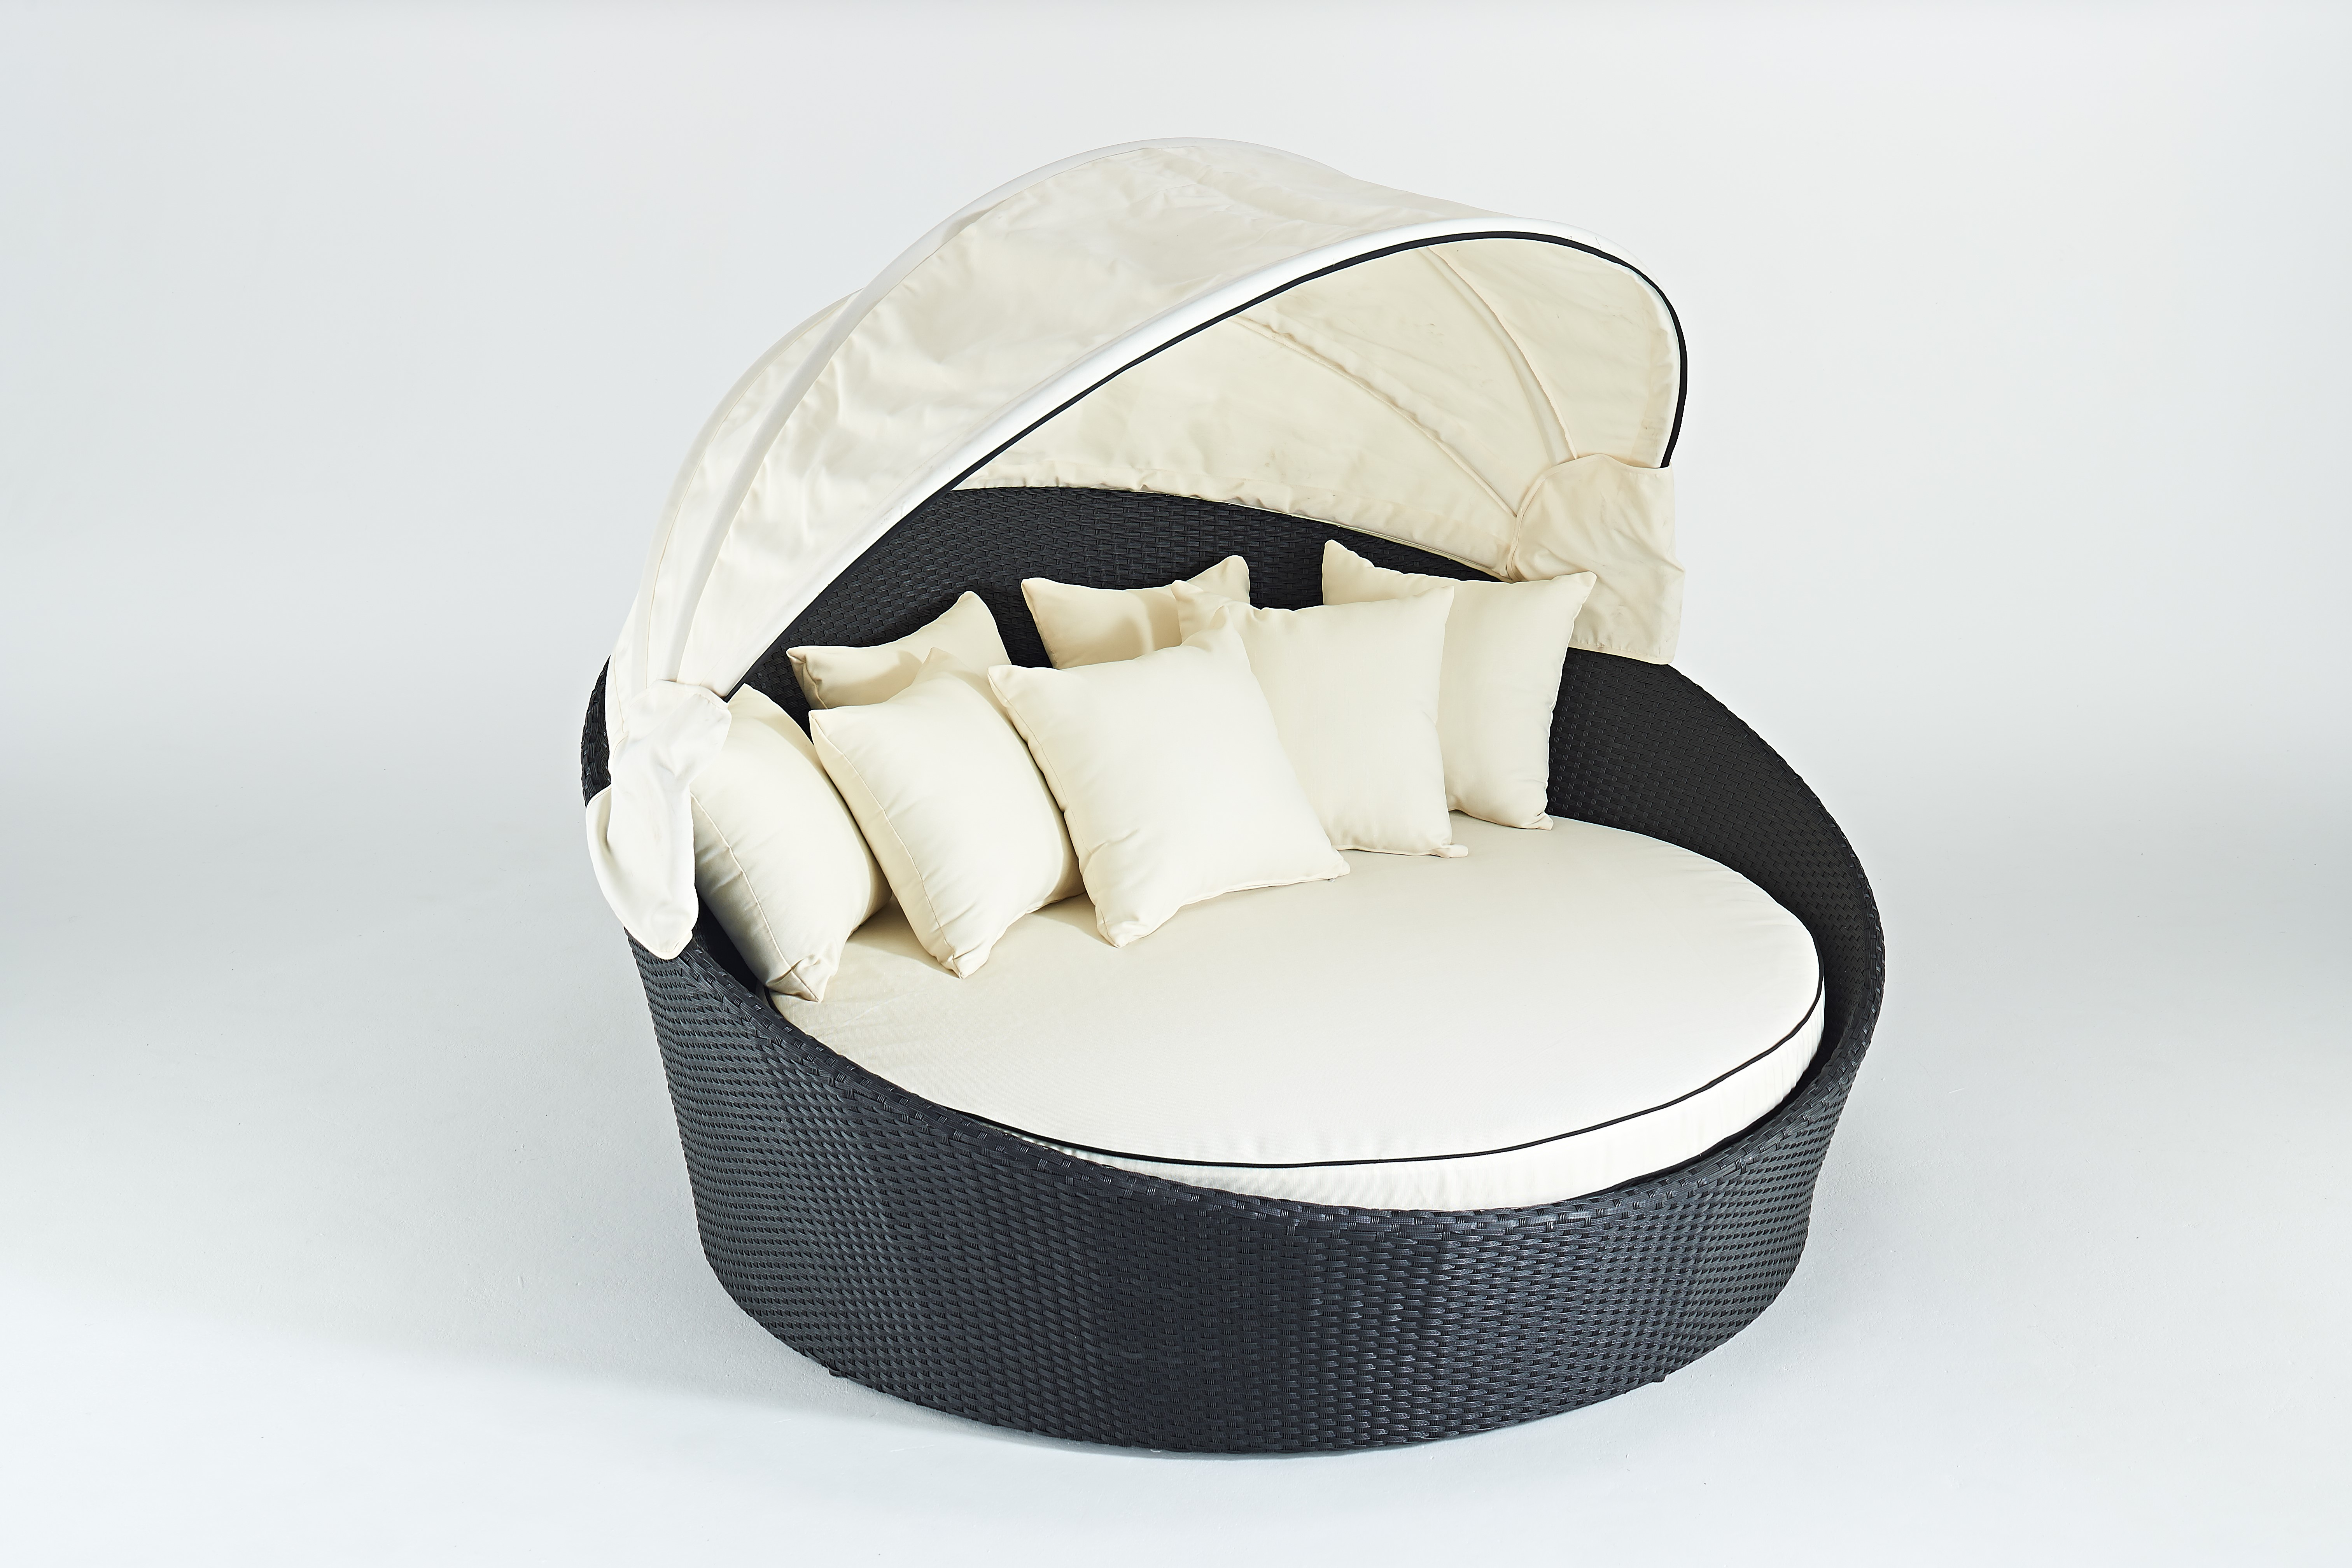 Rattan Daybed Suppliers : Royale riche vip luxury rattan daybed black and ivory